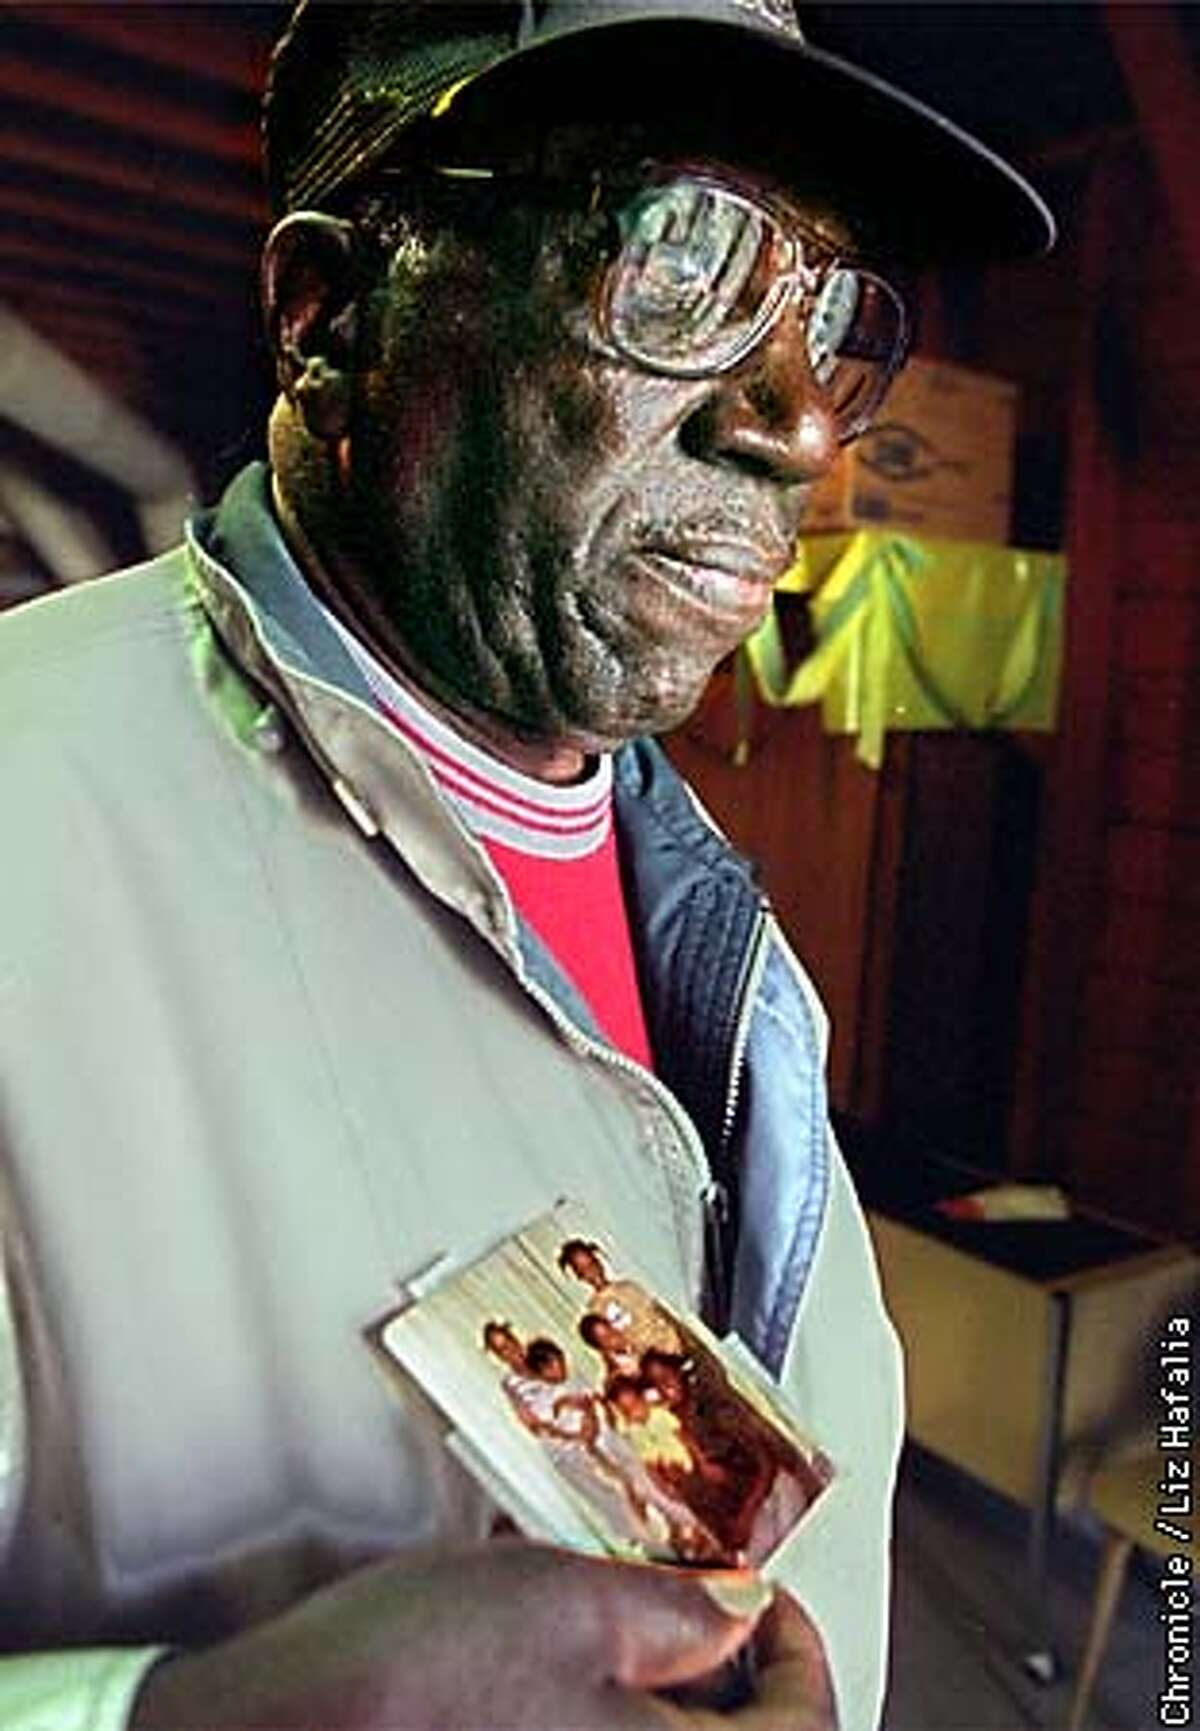 LEWIS /C/04NOV98/MN/LH--Freddie Lewis holding his one picture showing six of his seven children who were killed in the mass suicide ordered by Jim Jones twenty years ago. His wife as well as nineteen of his relatives were also part of the mass tragedy. Photo by Liz Hafalia